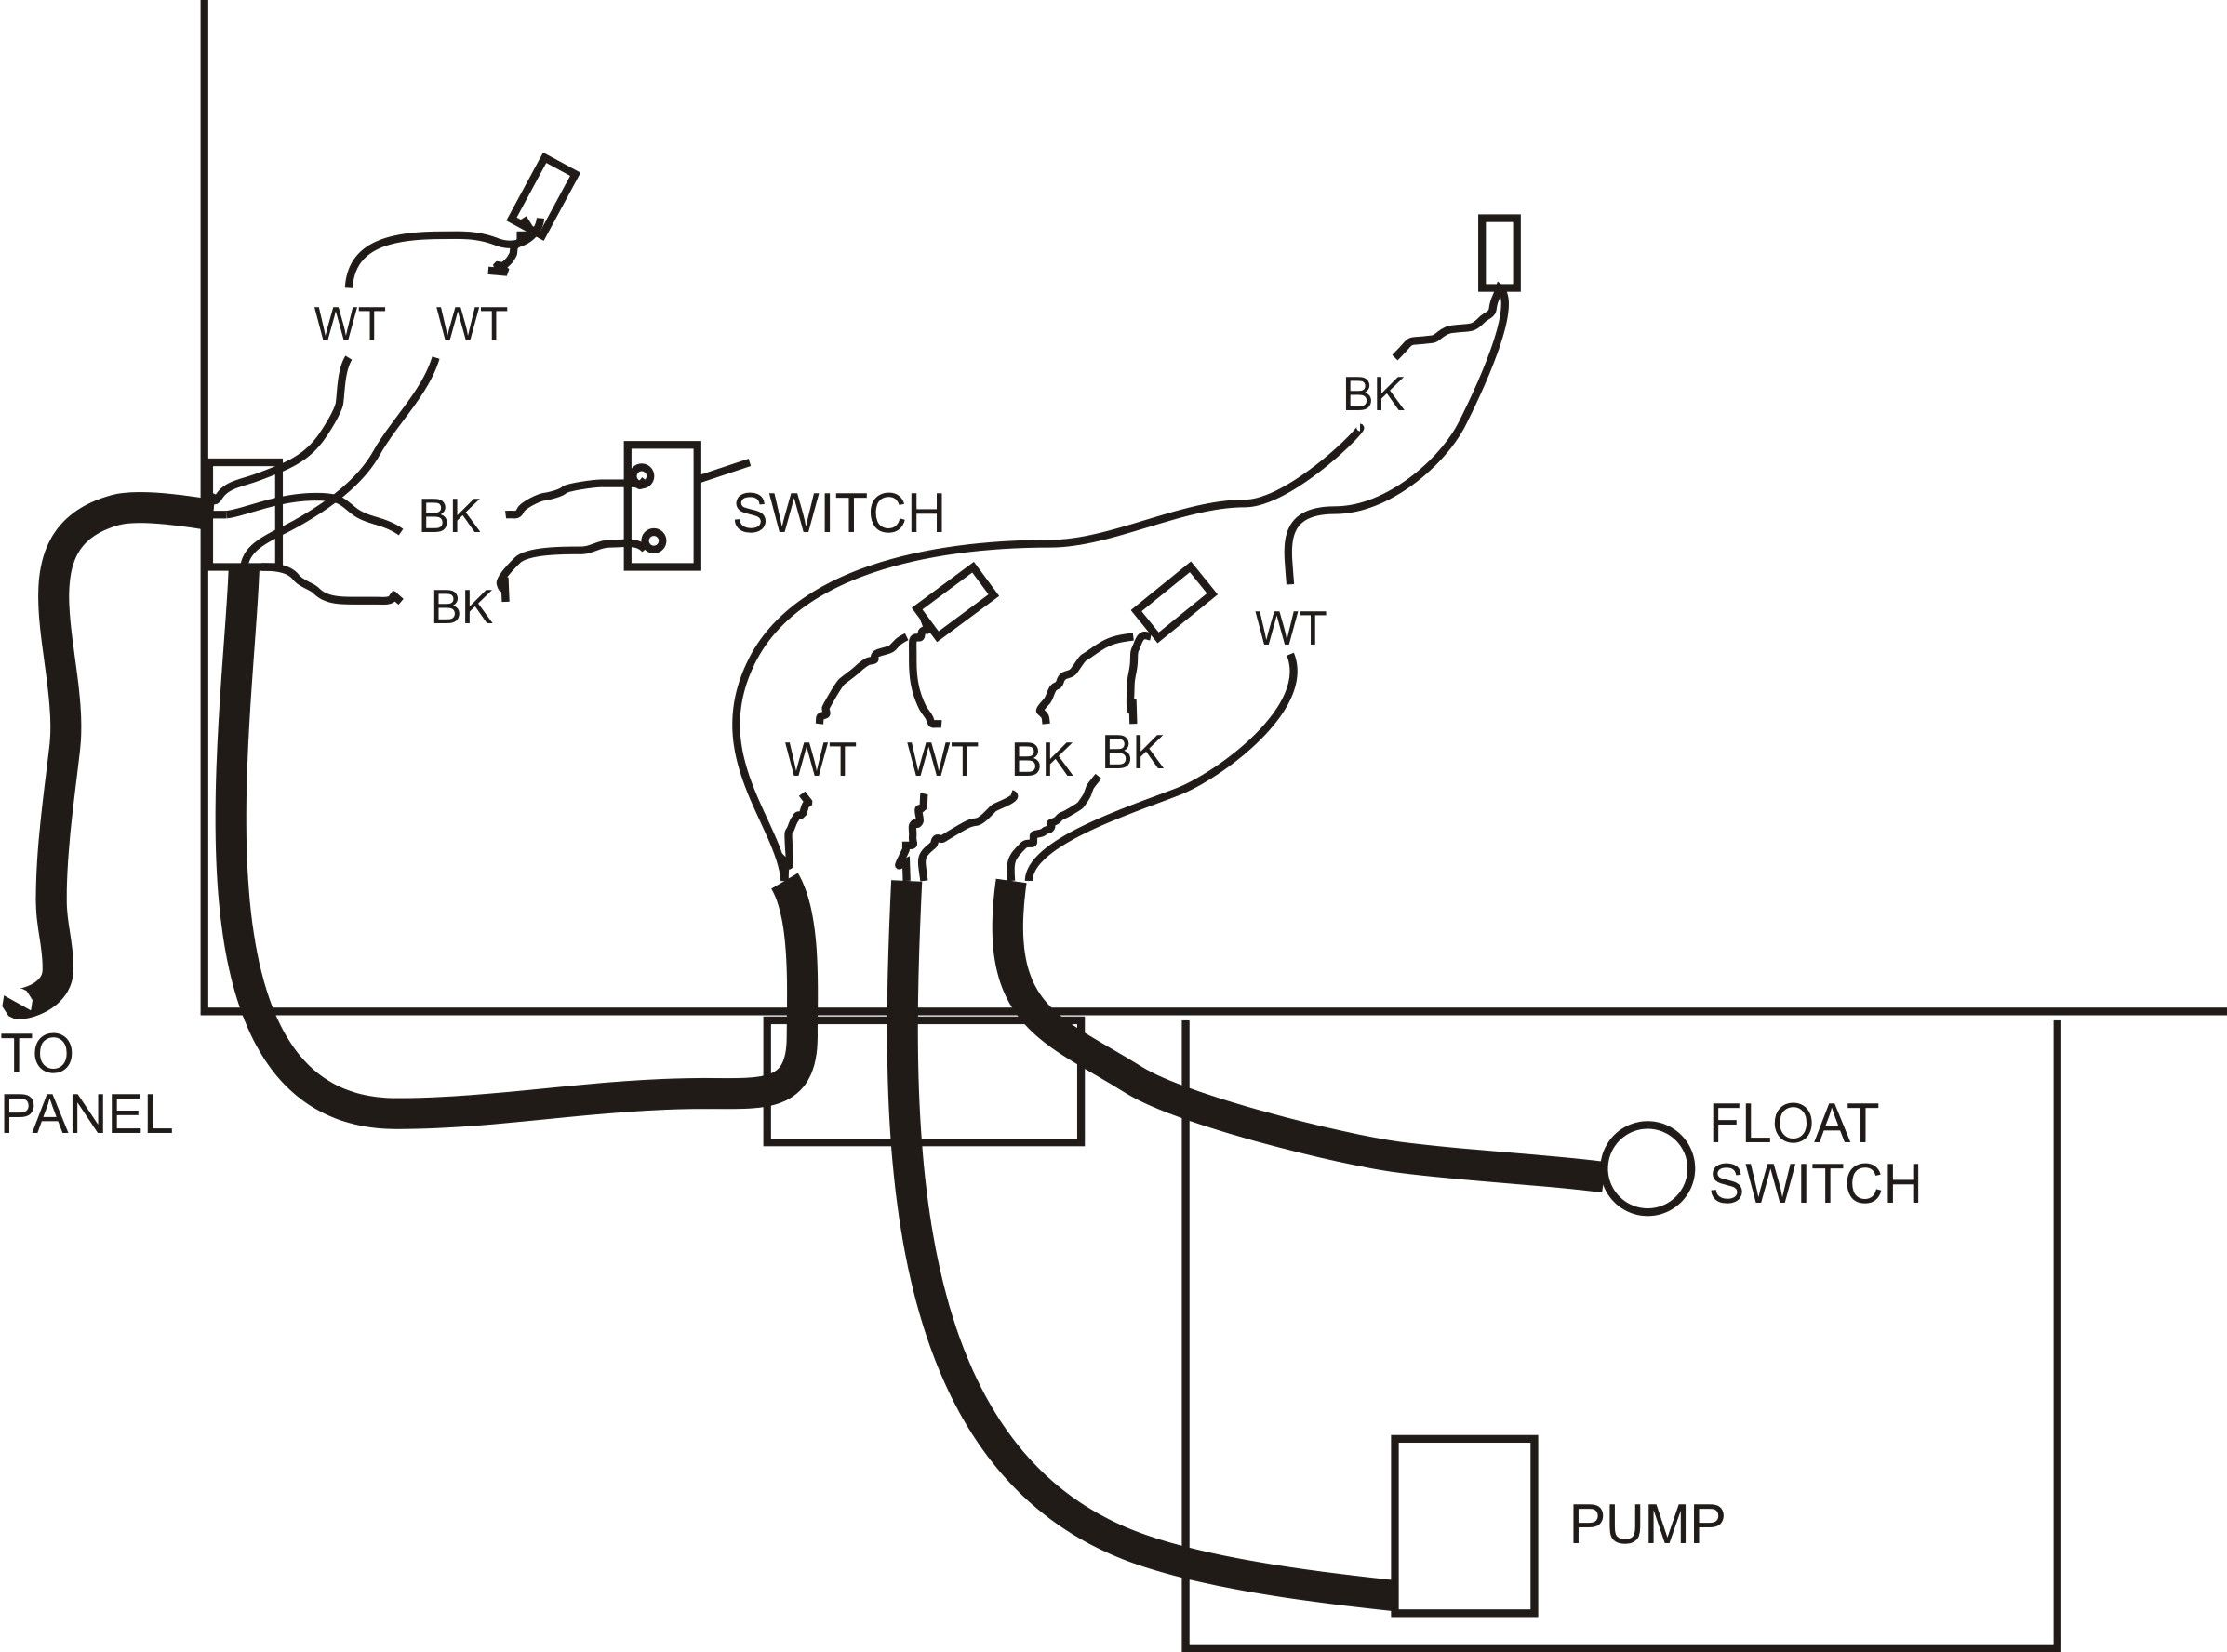 hight resolution of sewage pump wiring diagram wiring diagram name wiring diagram likewise water tank float switch on water tank float